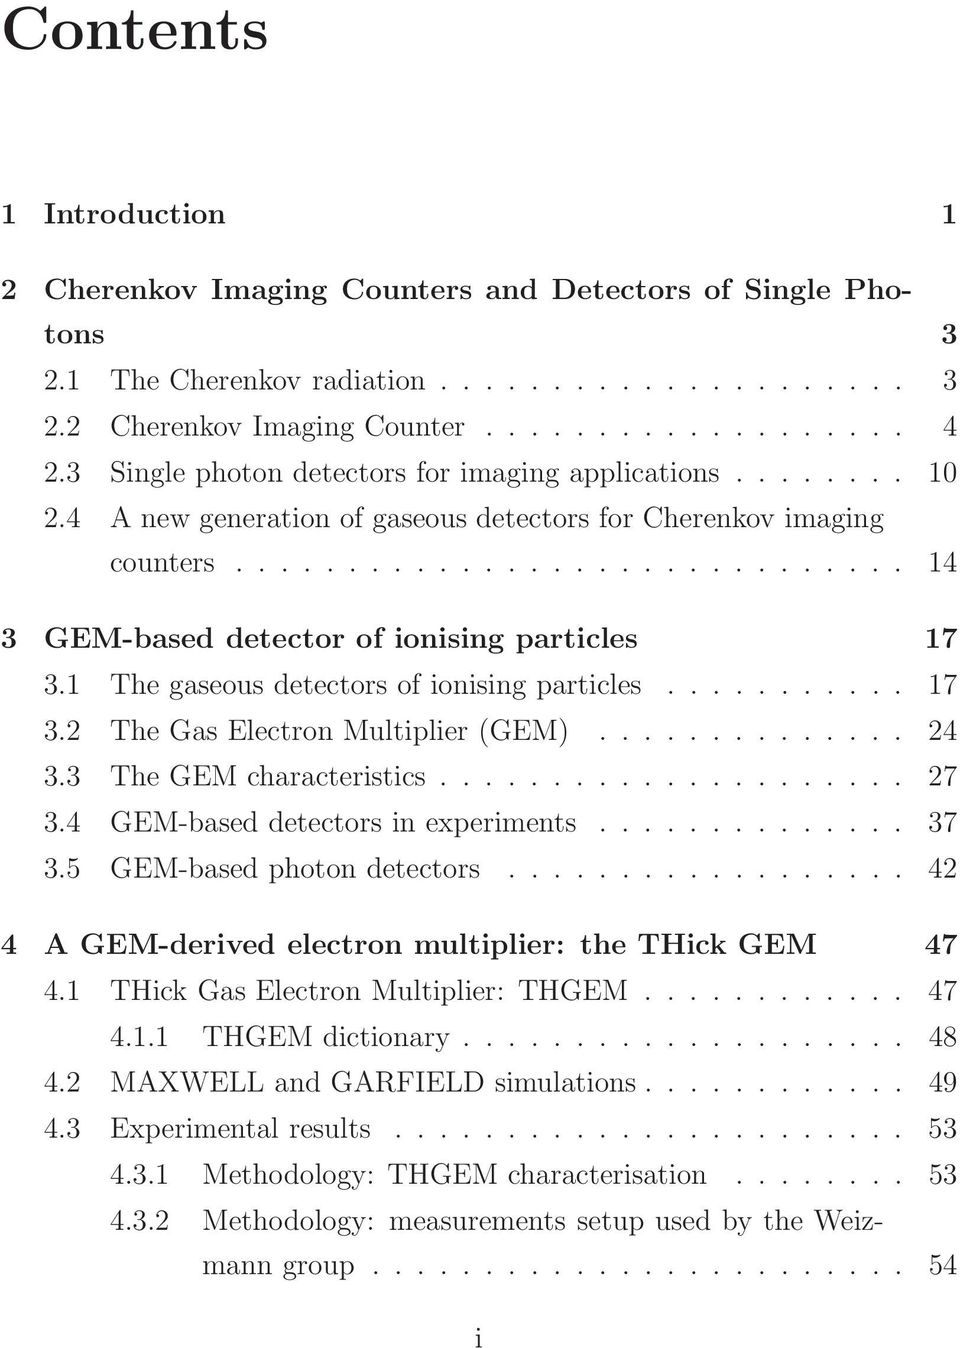 1 The gaseous detectors of ionising particles........... 17 3.2 The Gas Electron Multiplier (GEM).............. 24 3.3 The GEM characteristics..................... 27 3.